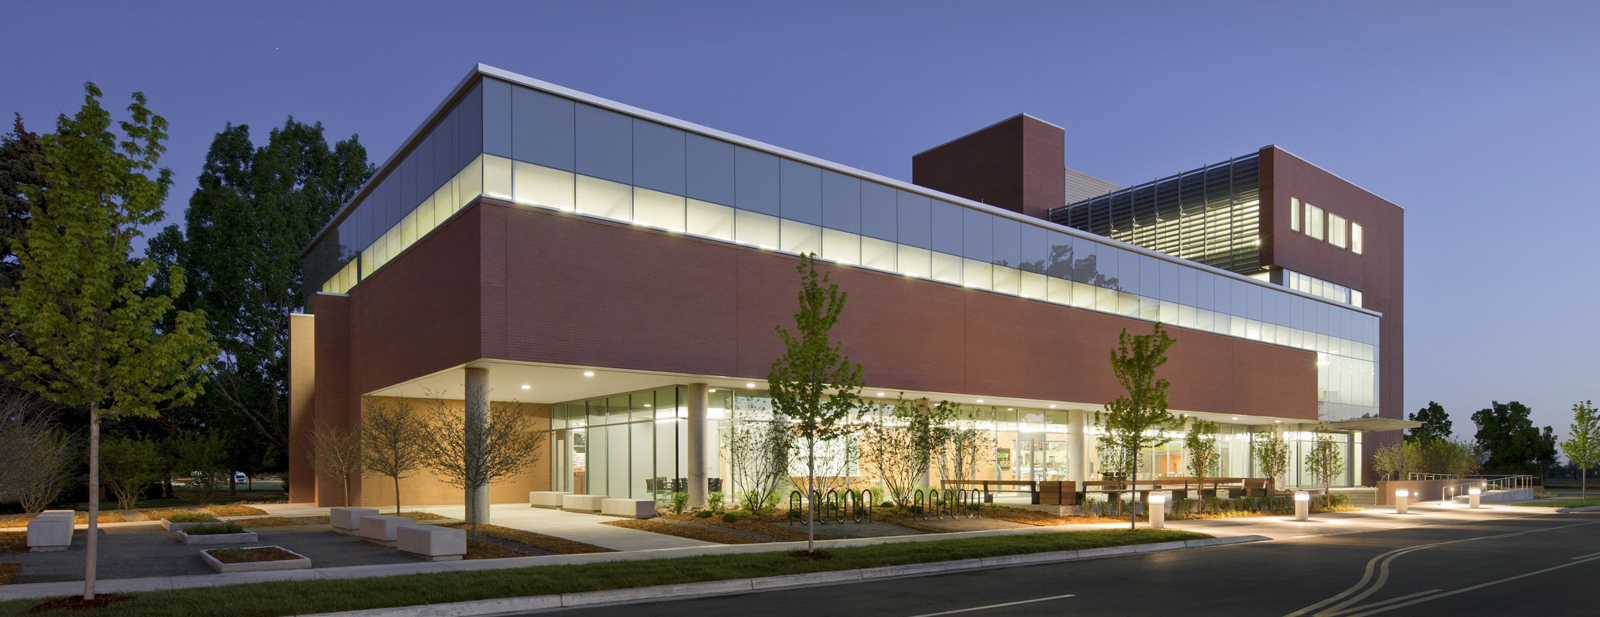 University of Colorado Denver, Anschutz Health and Wellness Center